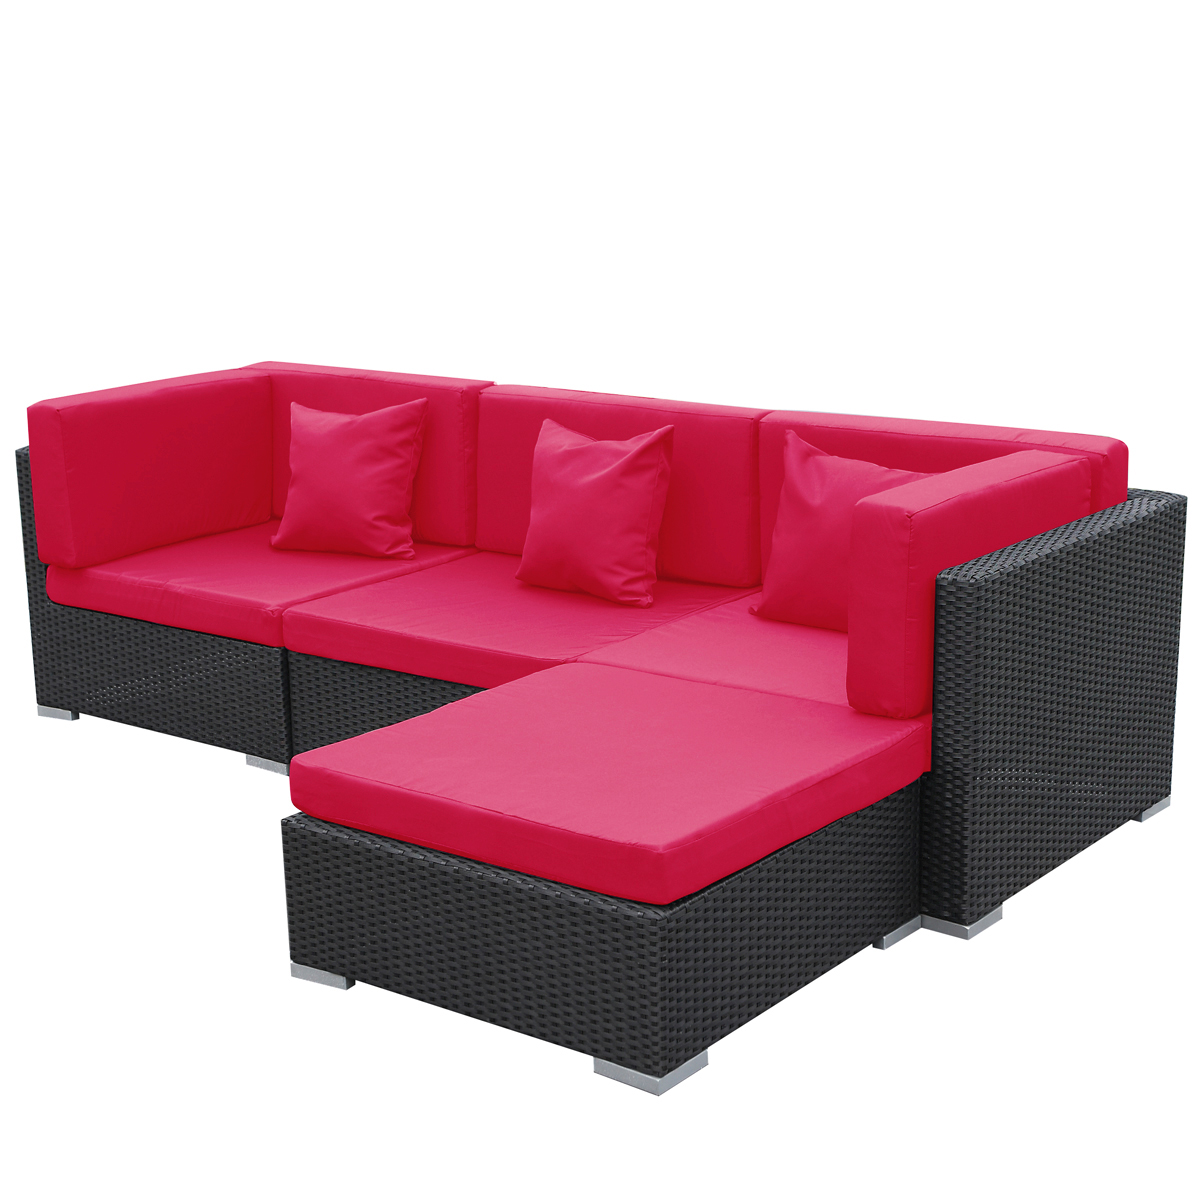 gartenm bel lounge sofa bergen ii schwarz rot. Black Bedroom Furniture Sets. Home Design Ideas